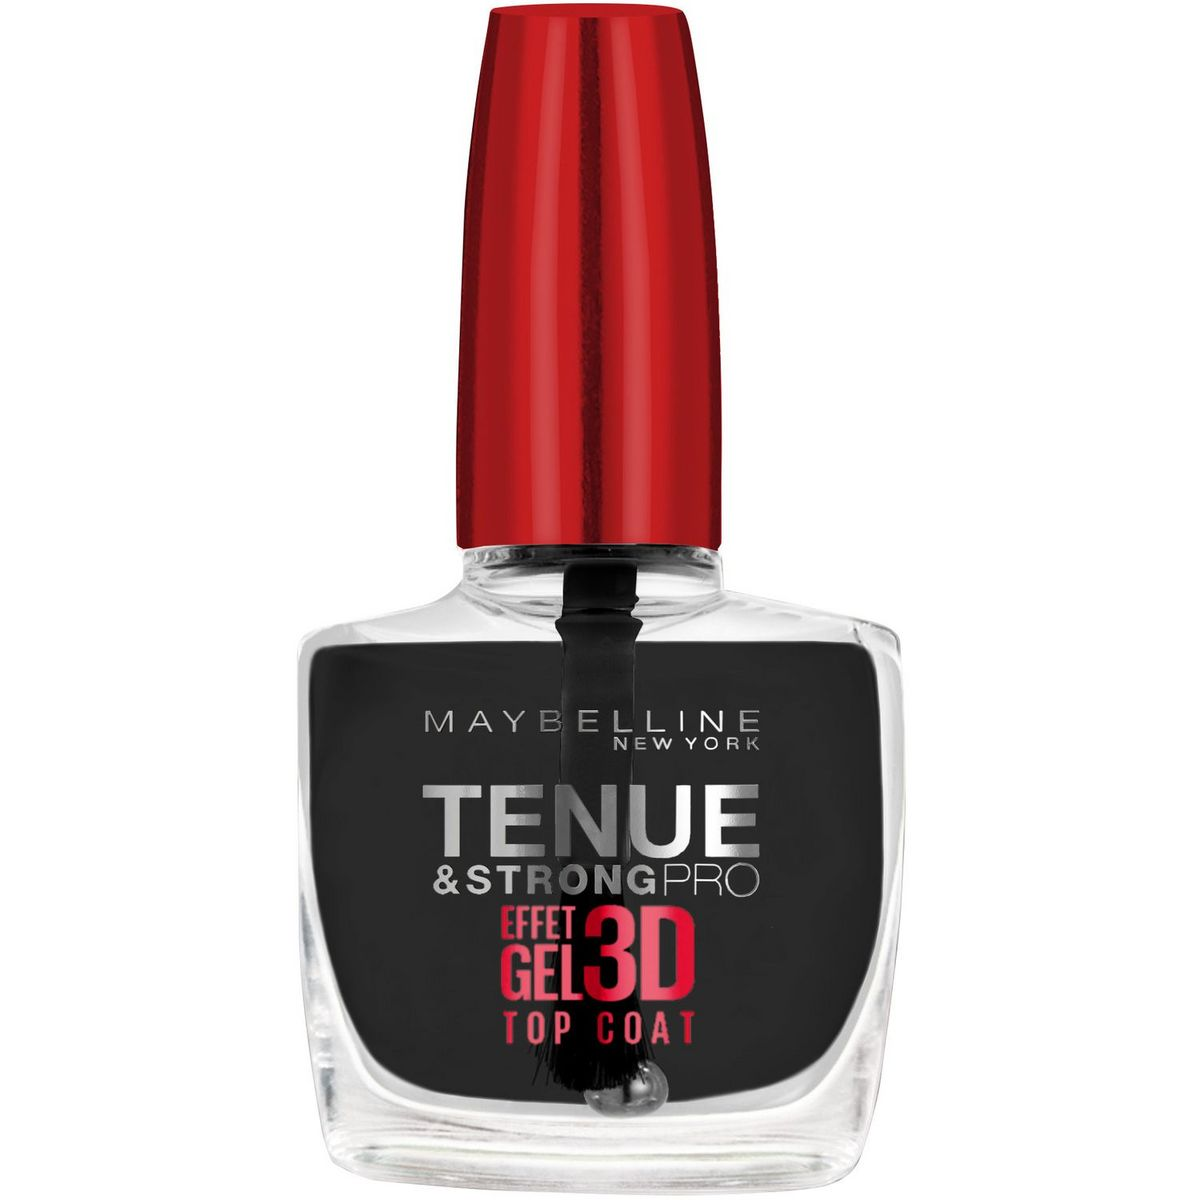 Gemey Maybelline Tenue Strong Pro vernis à ongles top coat effet gel 10ml